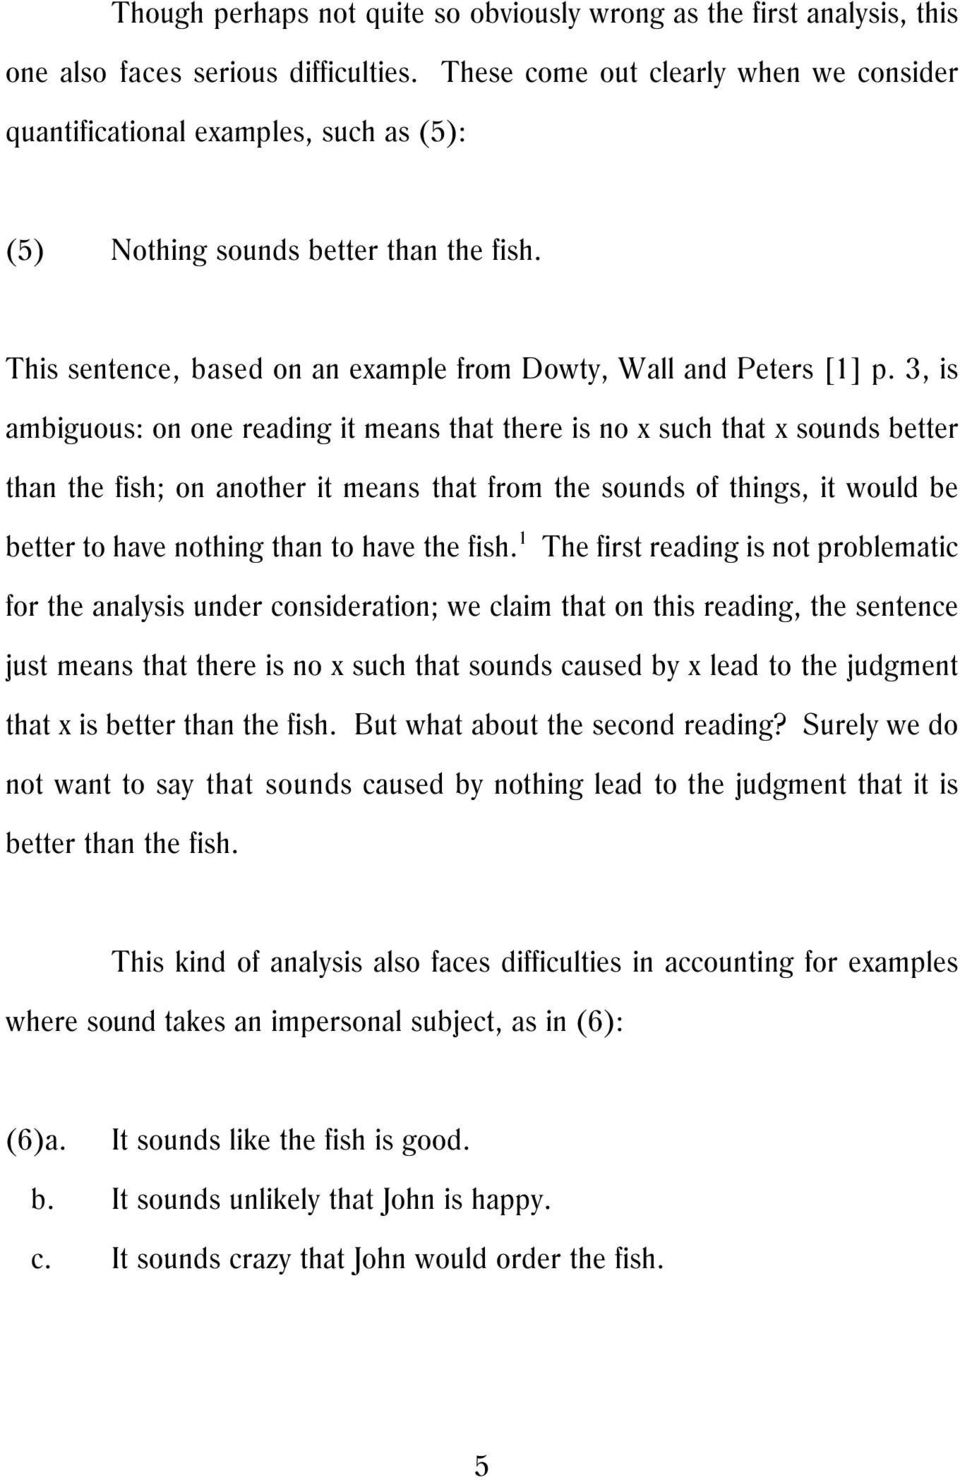 3, is ambiguous: on one reading it means that there is no x such that x sounds better than the fish; on another it means that from the sounds of things, it would be 1 better to have nothing than to